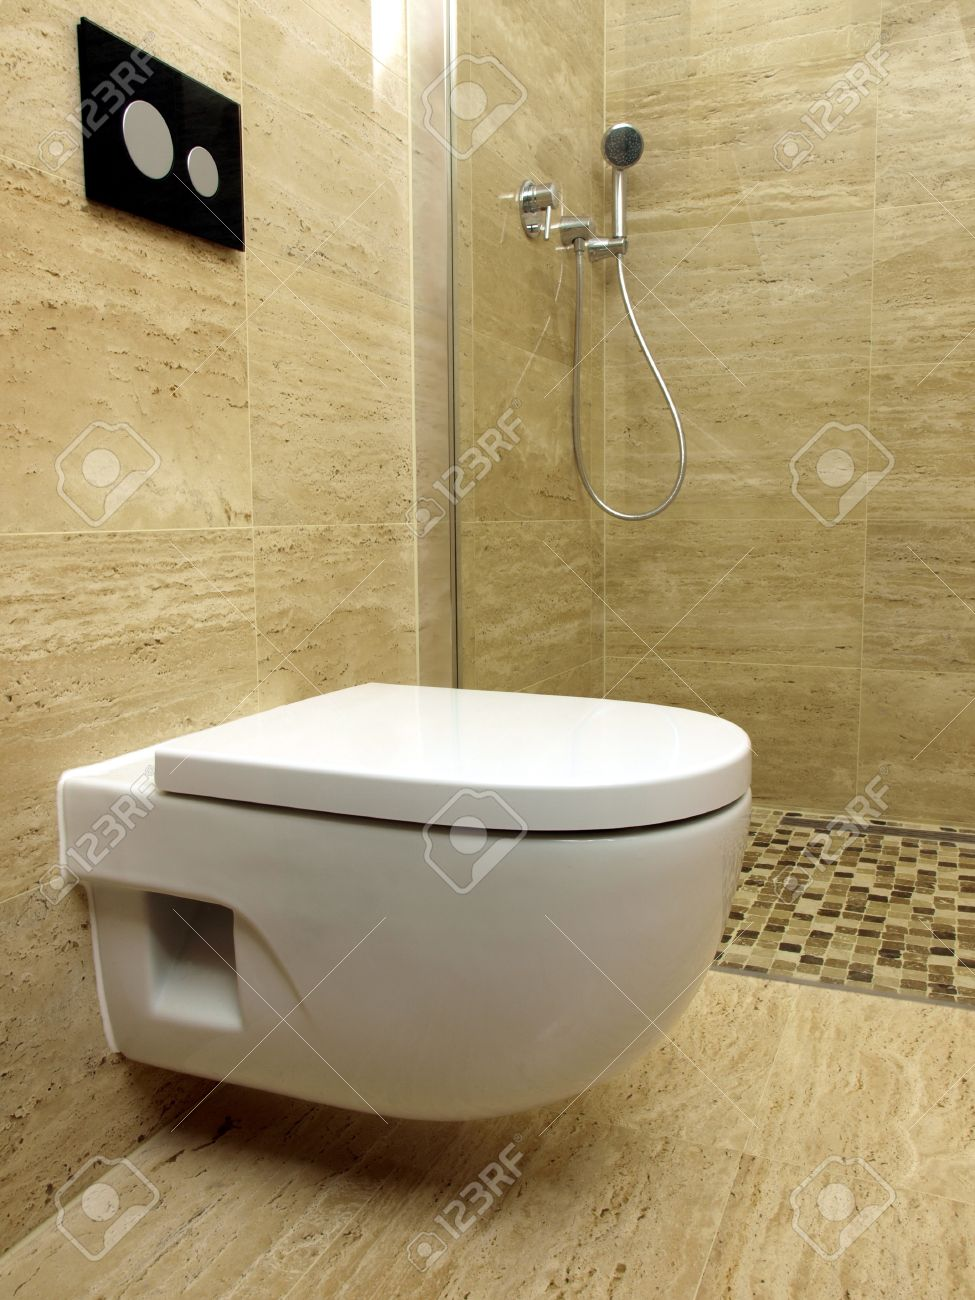 Wall Mounted Toilet In A Modern Bathroom With Travertine Tiles ...